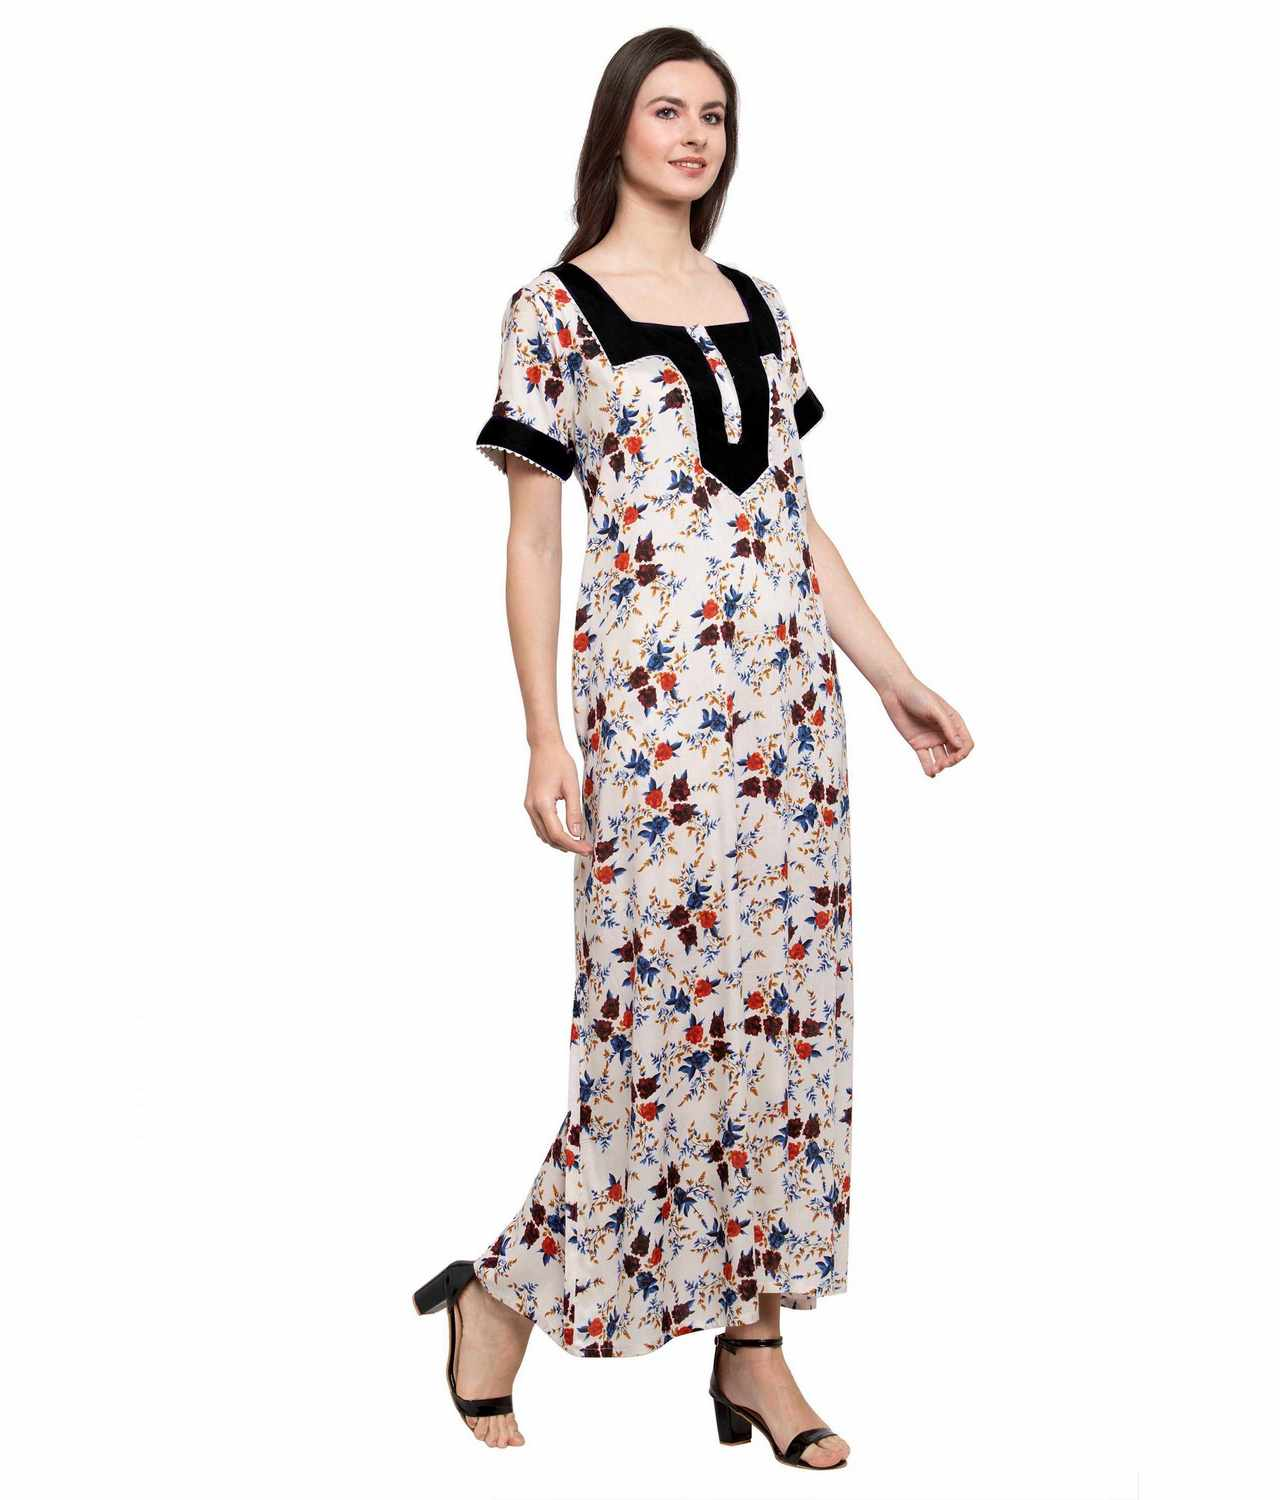 Embellished Square Neck Maxi Night-Gown Nighty in Black:Cream Print